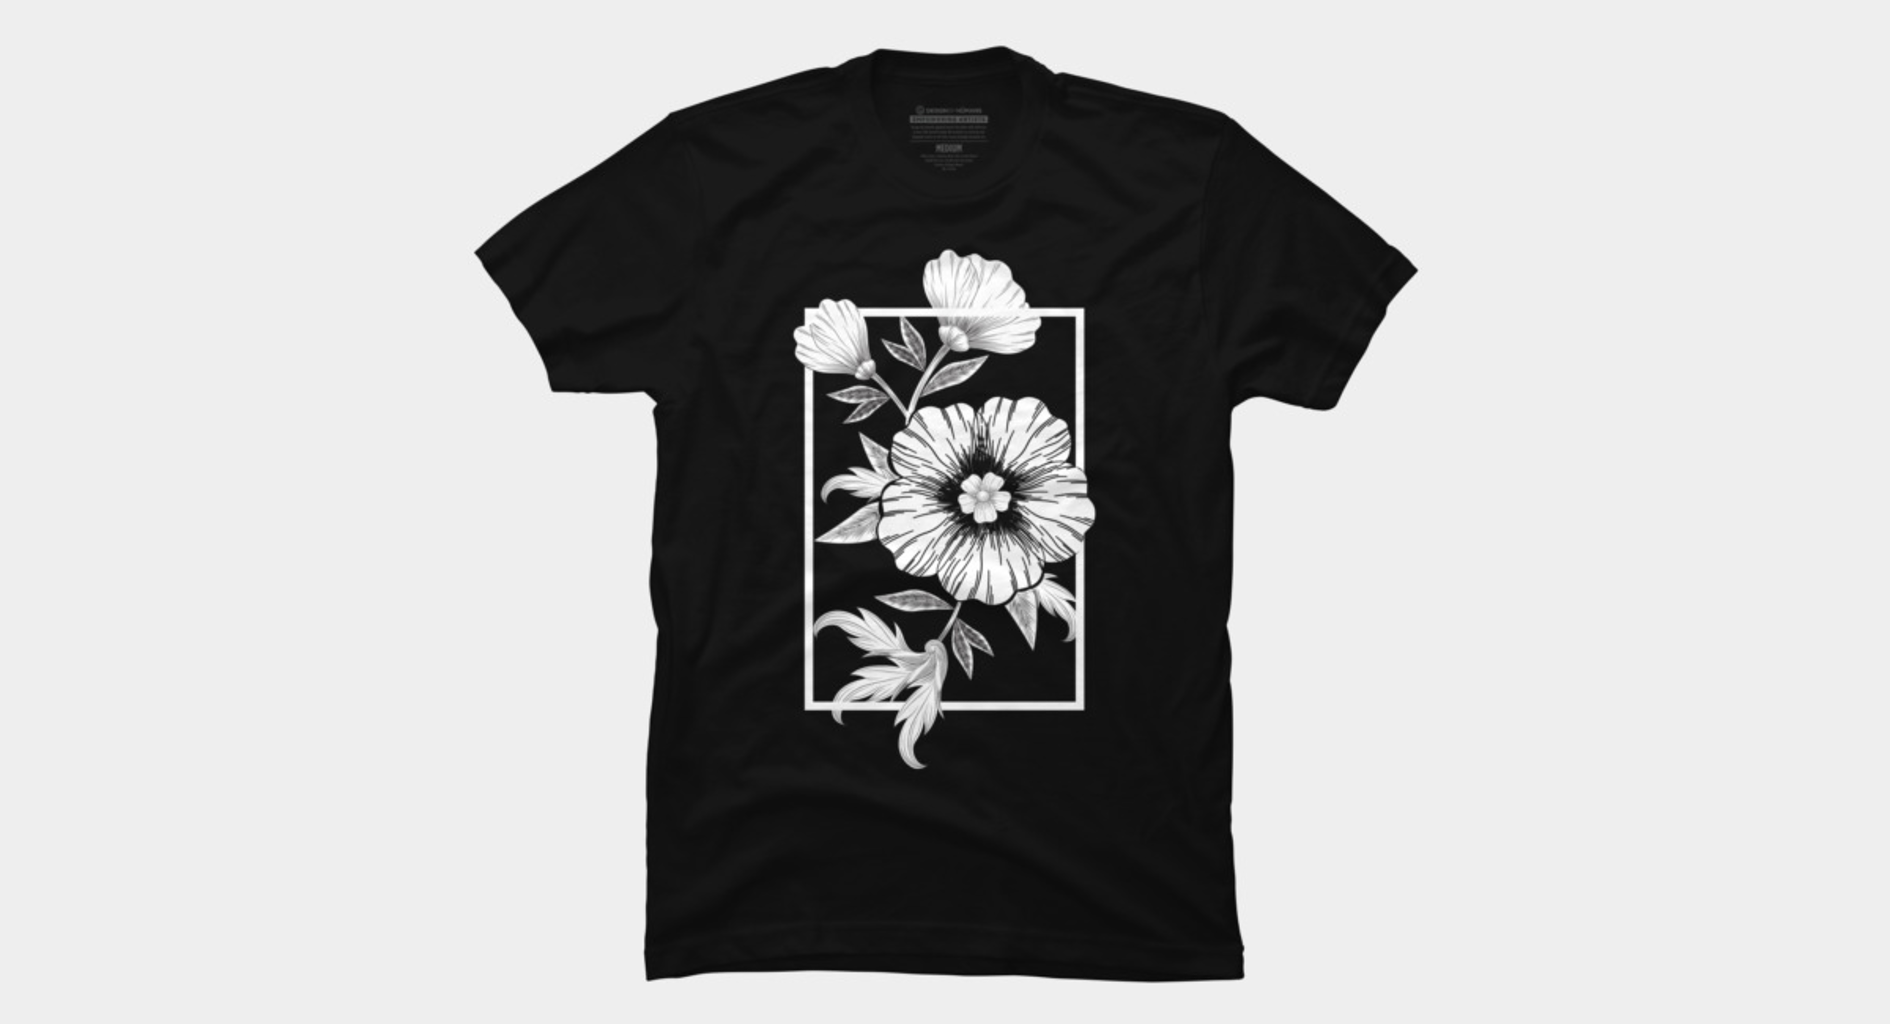 Design by Humans: Flower